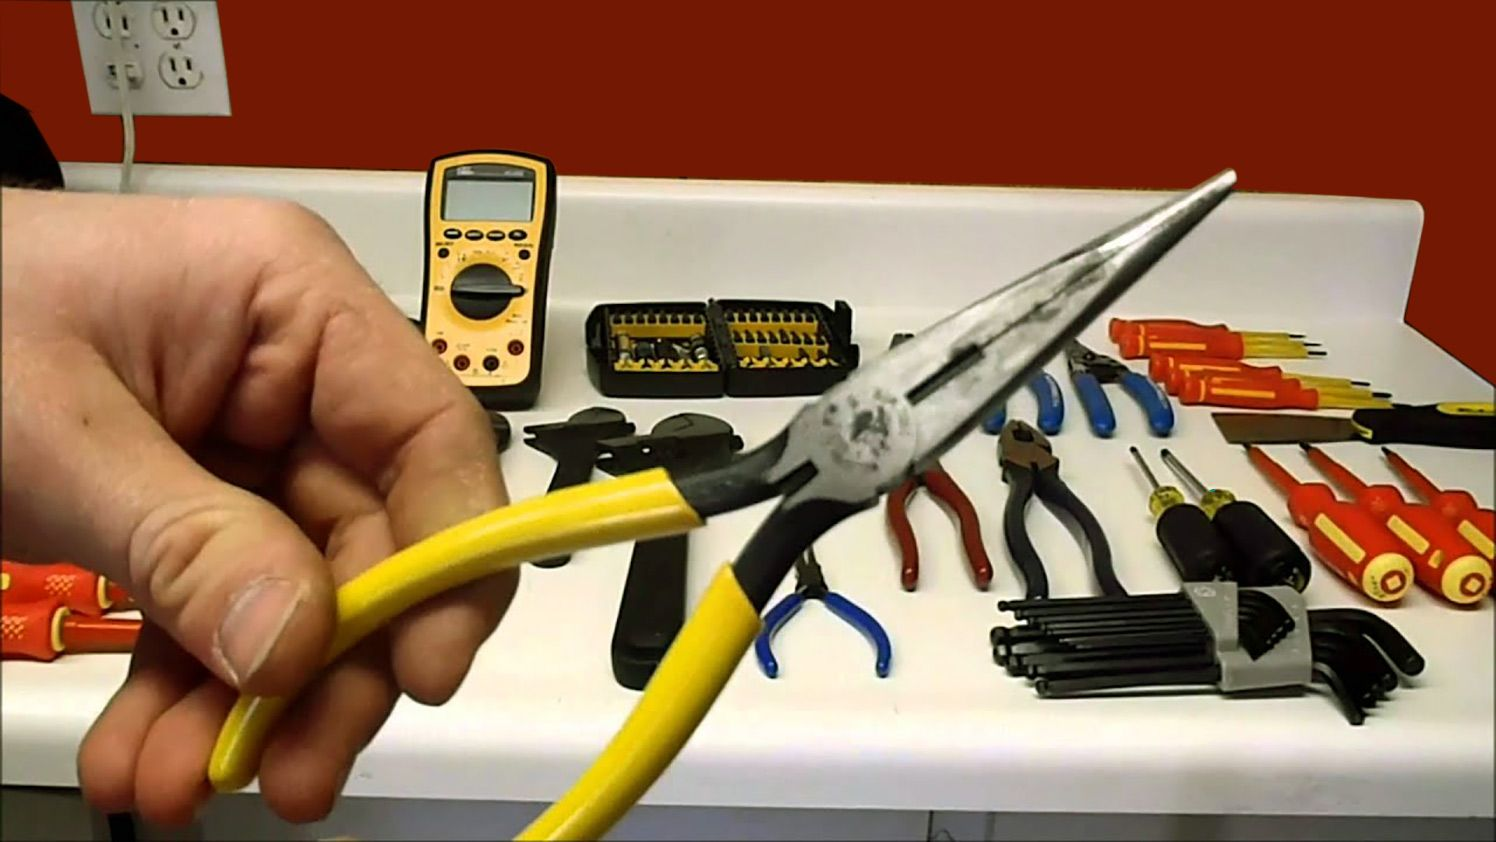 medium resolution of electrician general hand tools tech market support electrical installation electrical wiring electrical problems